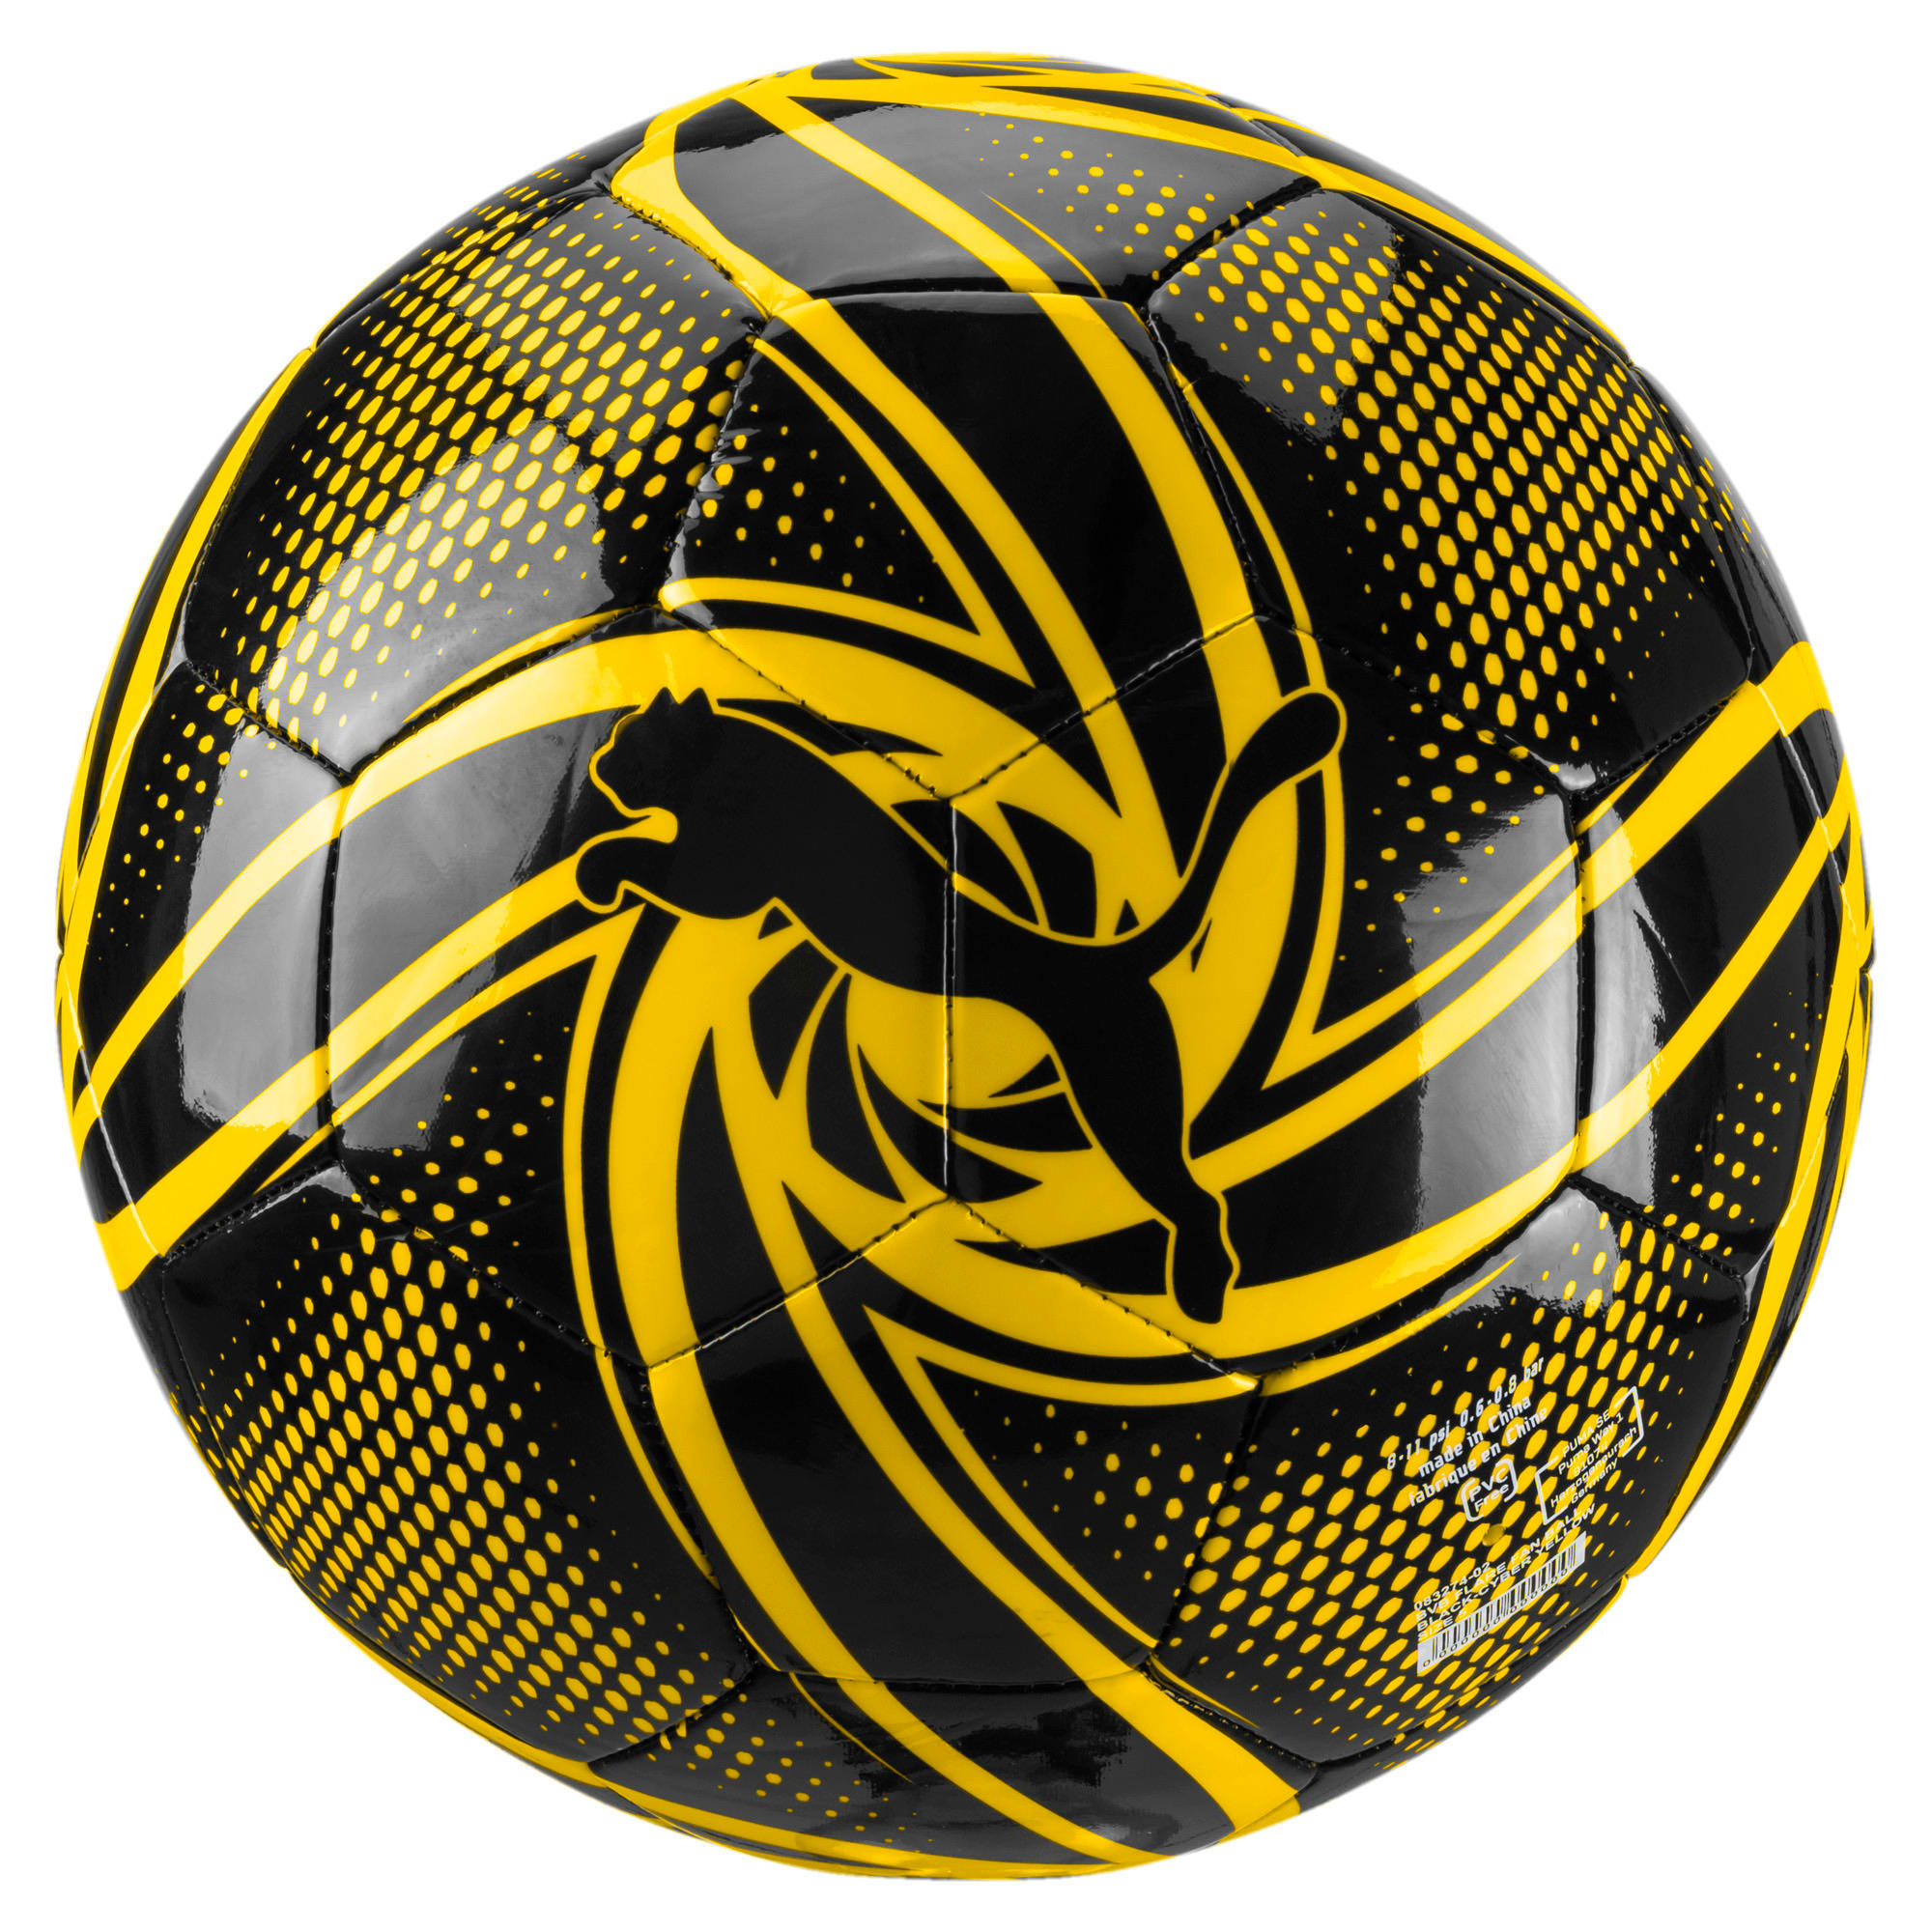 Thumbnail 1 of BVB FUTURE Flare Fan Ball, Puma Black-Cyber Yellow, medium